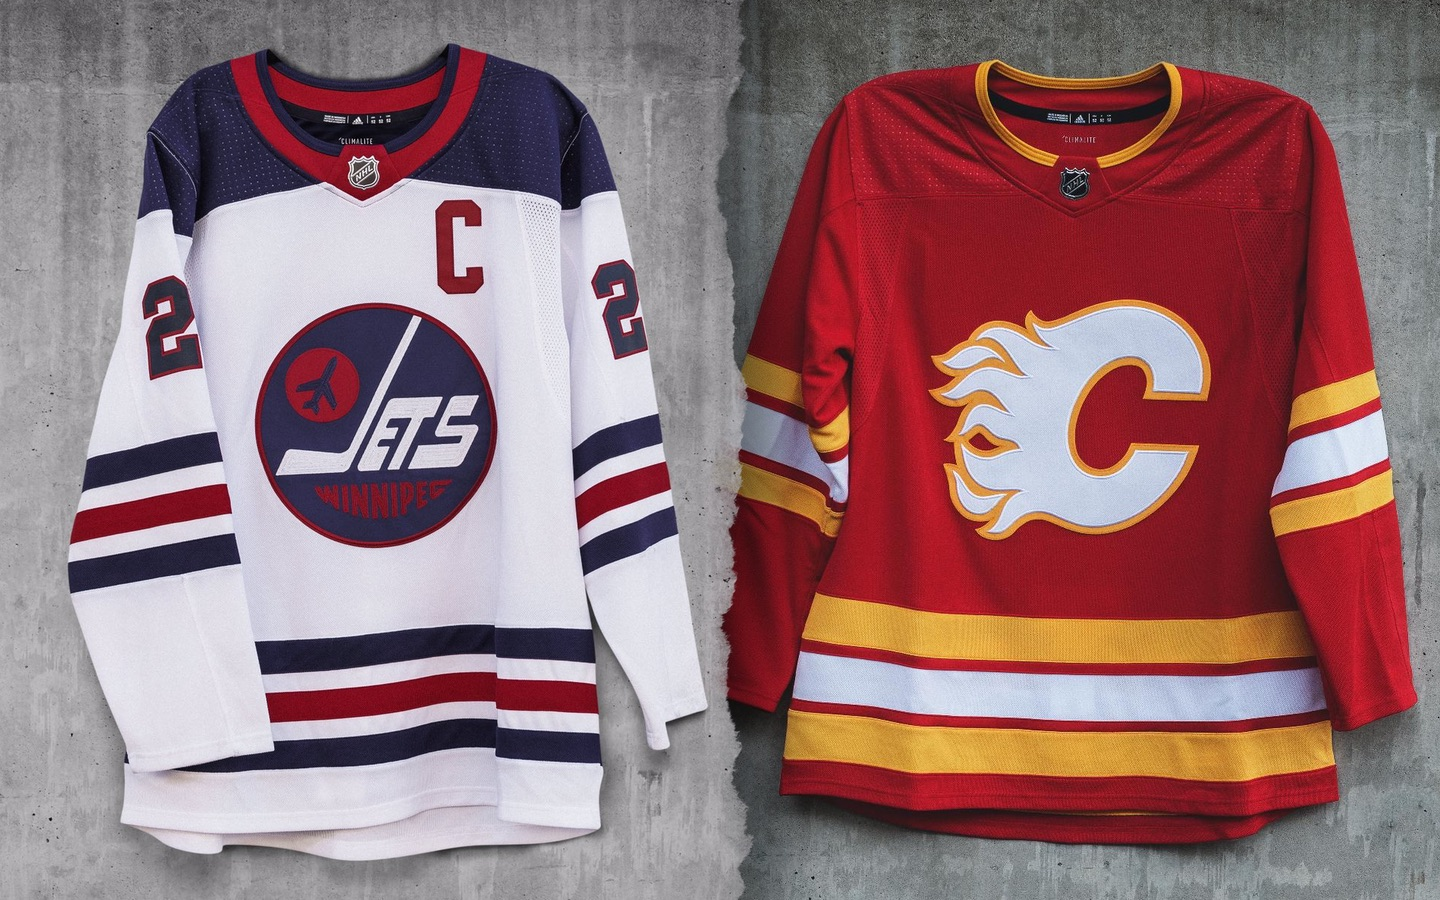 reputable site 3d9f7 f390d icethetics.com: When will we see the 2019-20 NHL event jerseys?